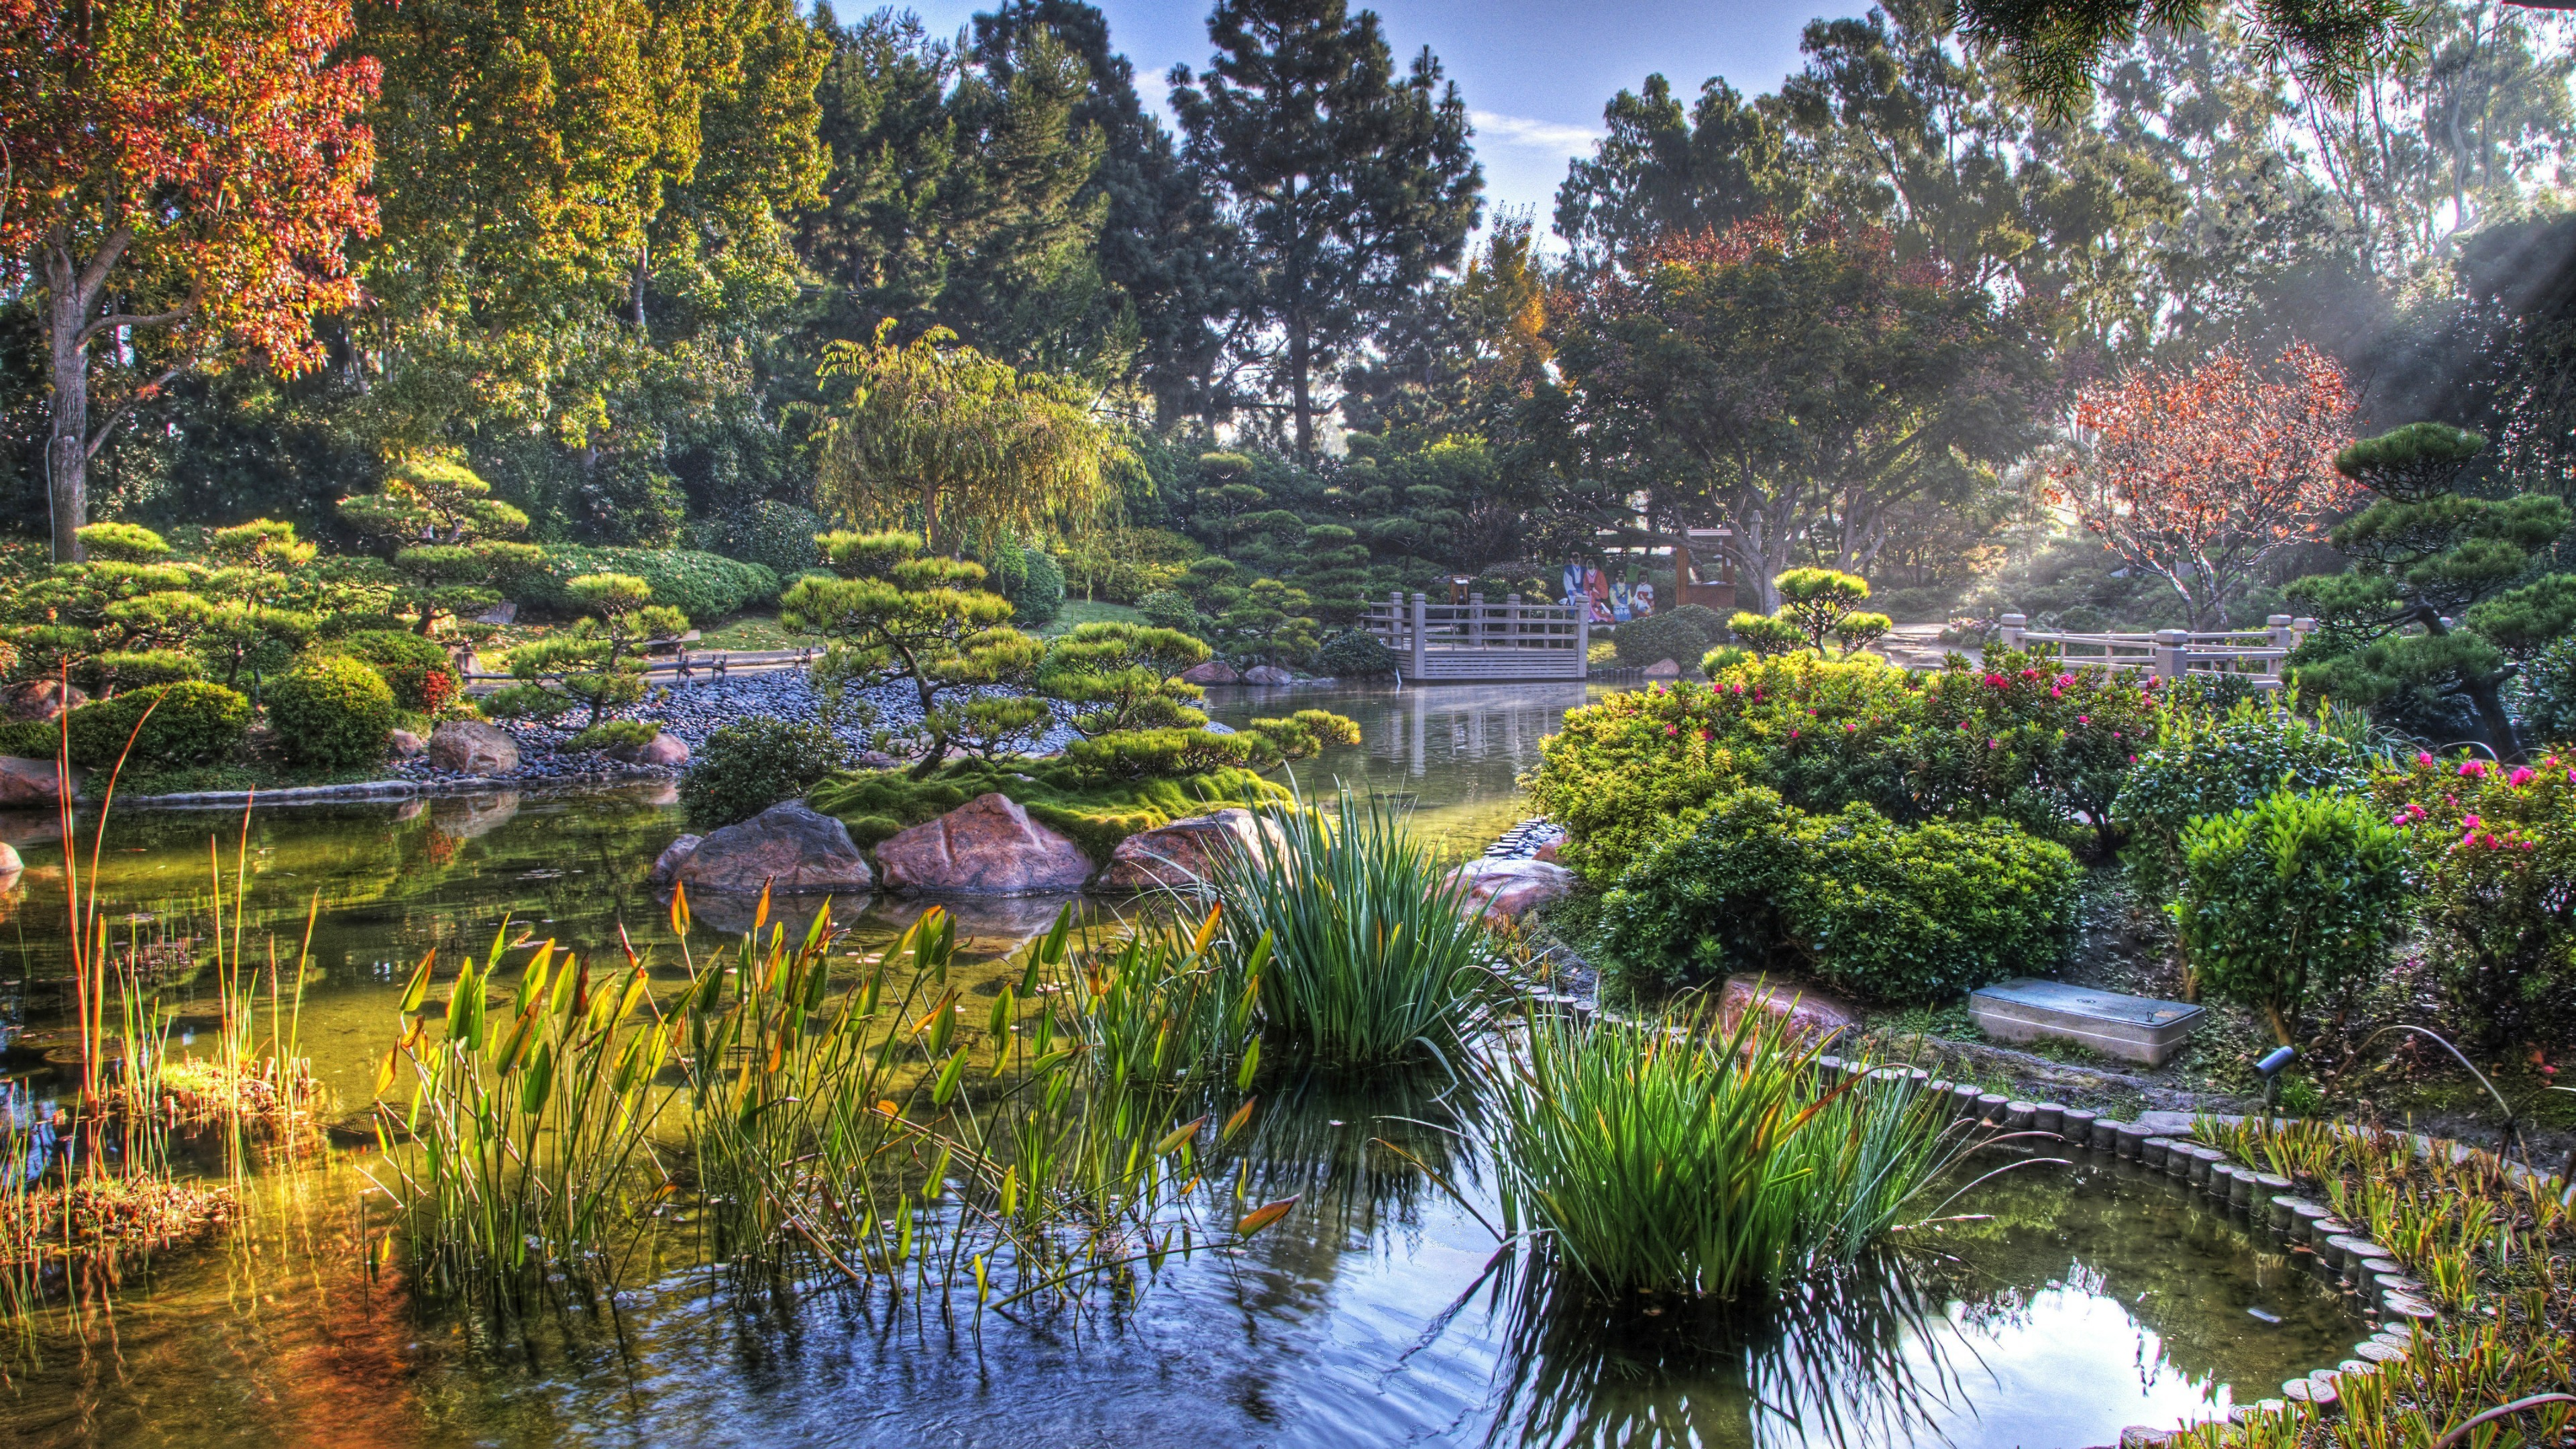 Res: 3840x2160, Earl Burns Miller Japanese Garden Wallpaper | Wallpaper Studio 10 | Tens of  thousands HD and UltraHD wallpapers for Android, Windows and Xbox